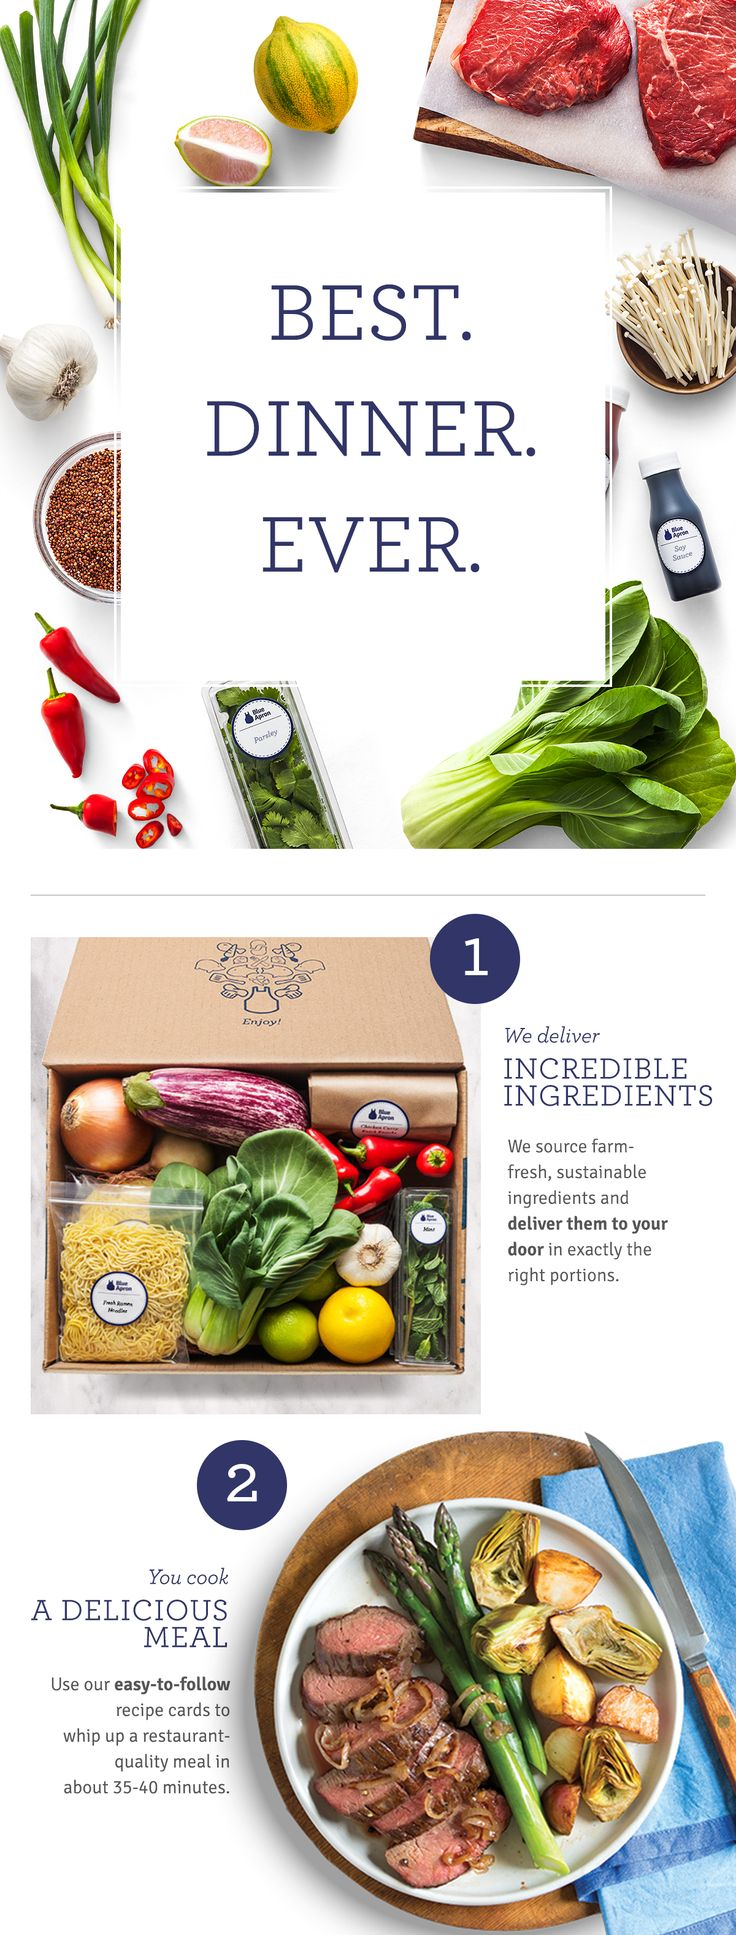 Blue apron nordic ice - Blue Apron Makes It Easy To Create Incredible Meals Each Week With Farm Fresh Produce